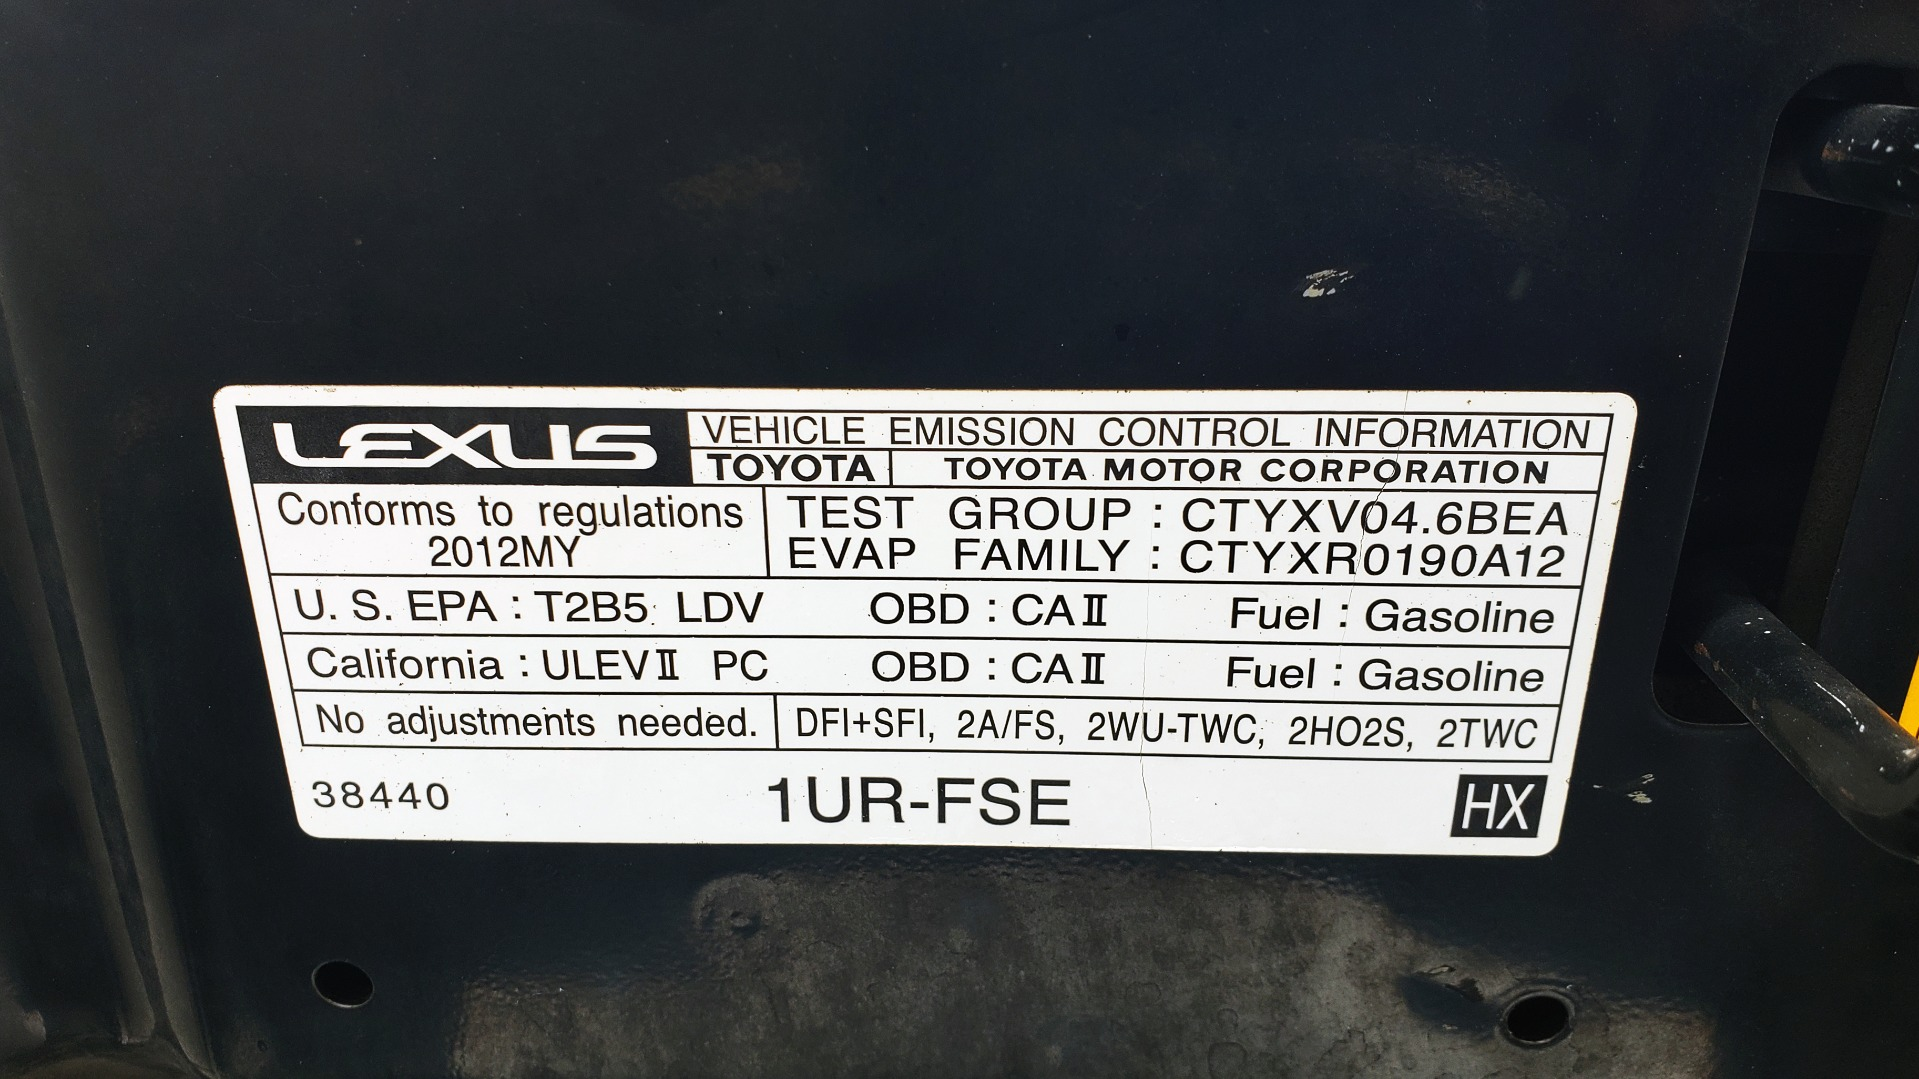 Used 2012 Lexus LS 460 COMFORT W/SPORT / VENT SEATS / NAV / MARK LEV SND / SUNROOF for sale Sold at Formula Imports in Charlotte NC 28227 12